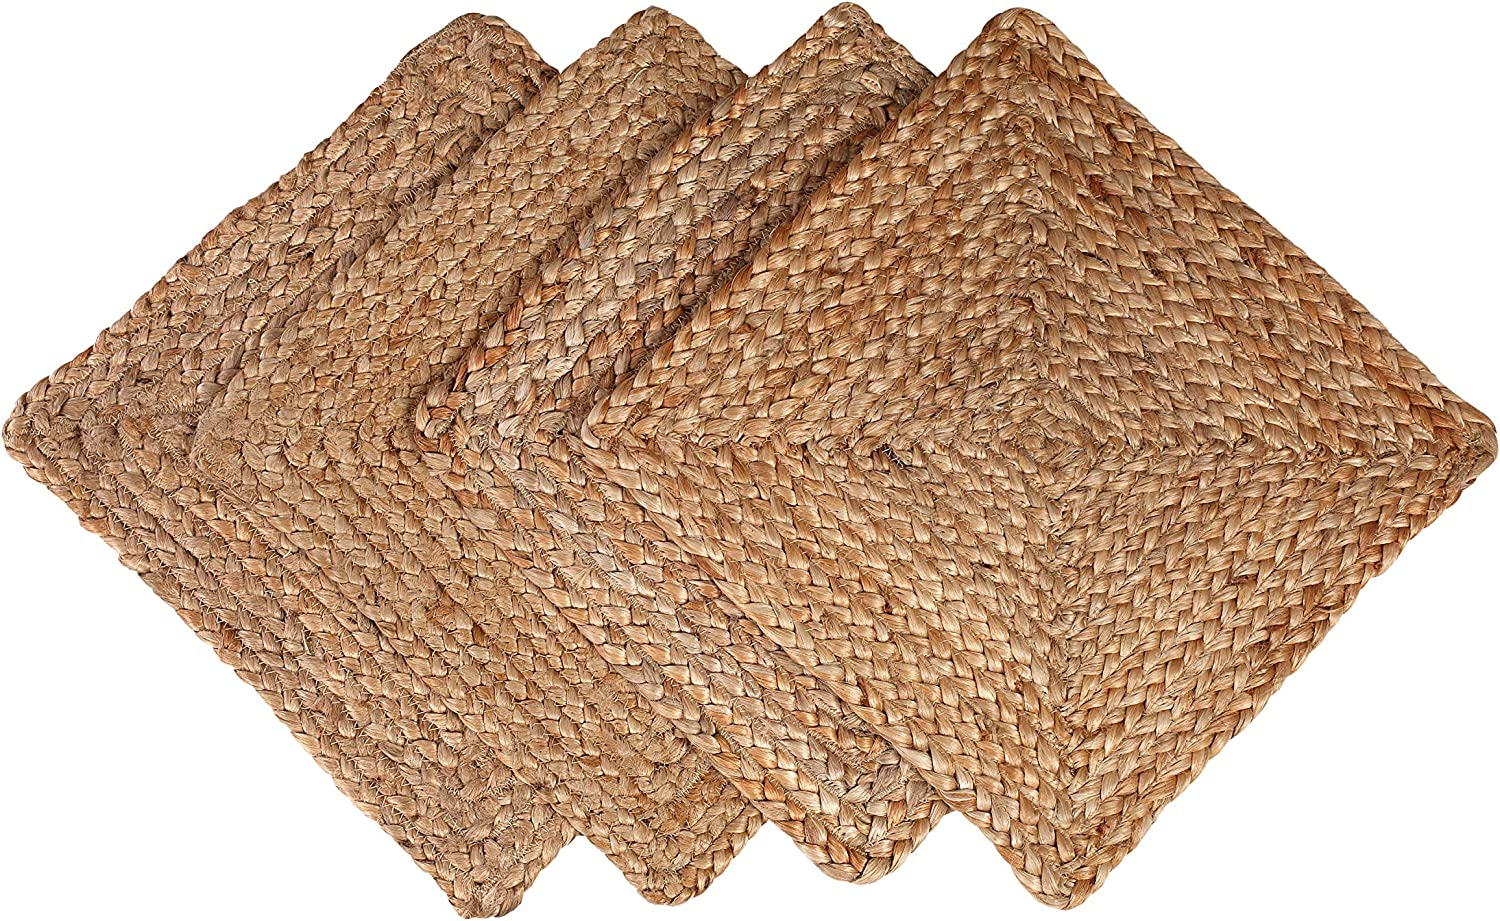 Amazon Com Glamburg Jute Braided Placemats Set Of 4 Reversible 100 Jute Nonslip 14x14 Square Farmhouse Vintage Jute Placemats For Dining Table Perfect For Indoor Outdoor Natural Home Kitchen